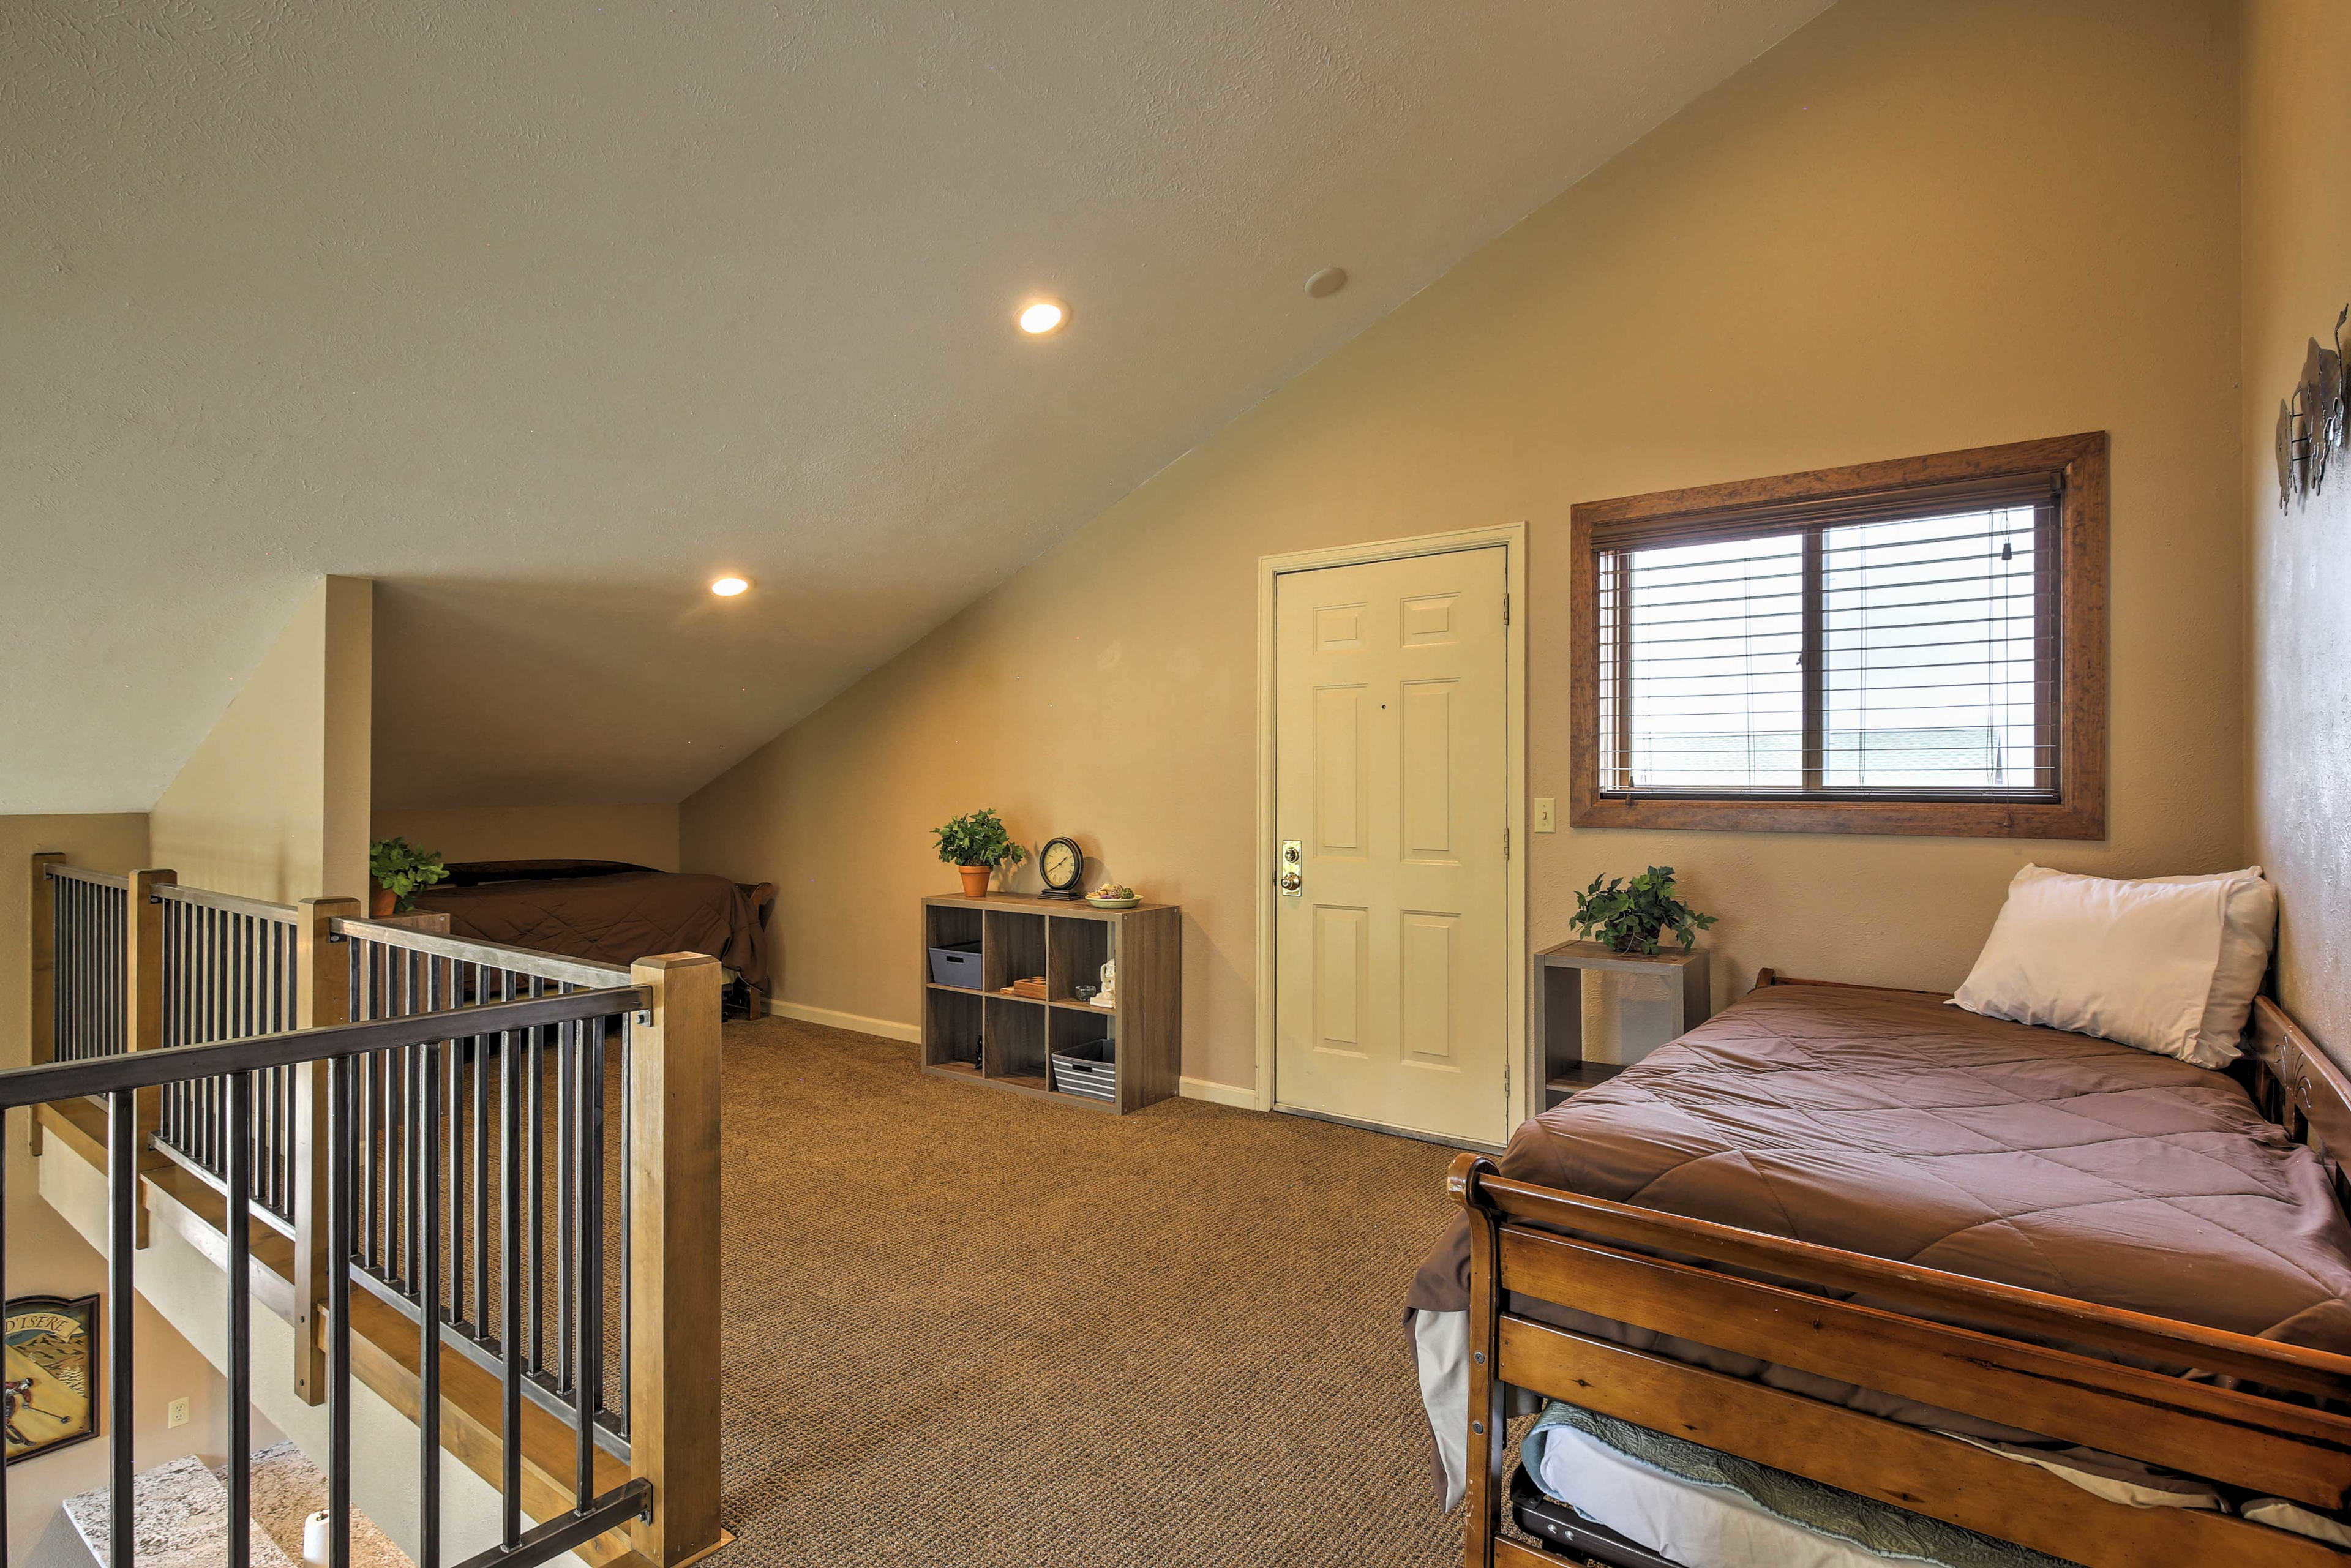 Loft | 2 Twin Beds w/ Twin Trundle Beds